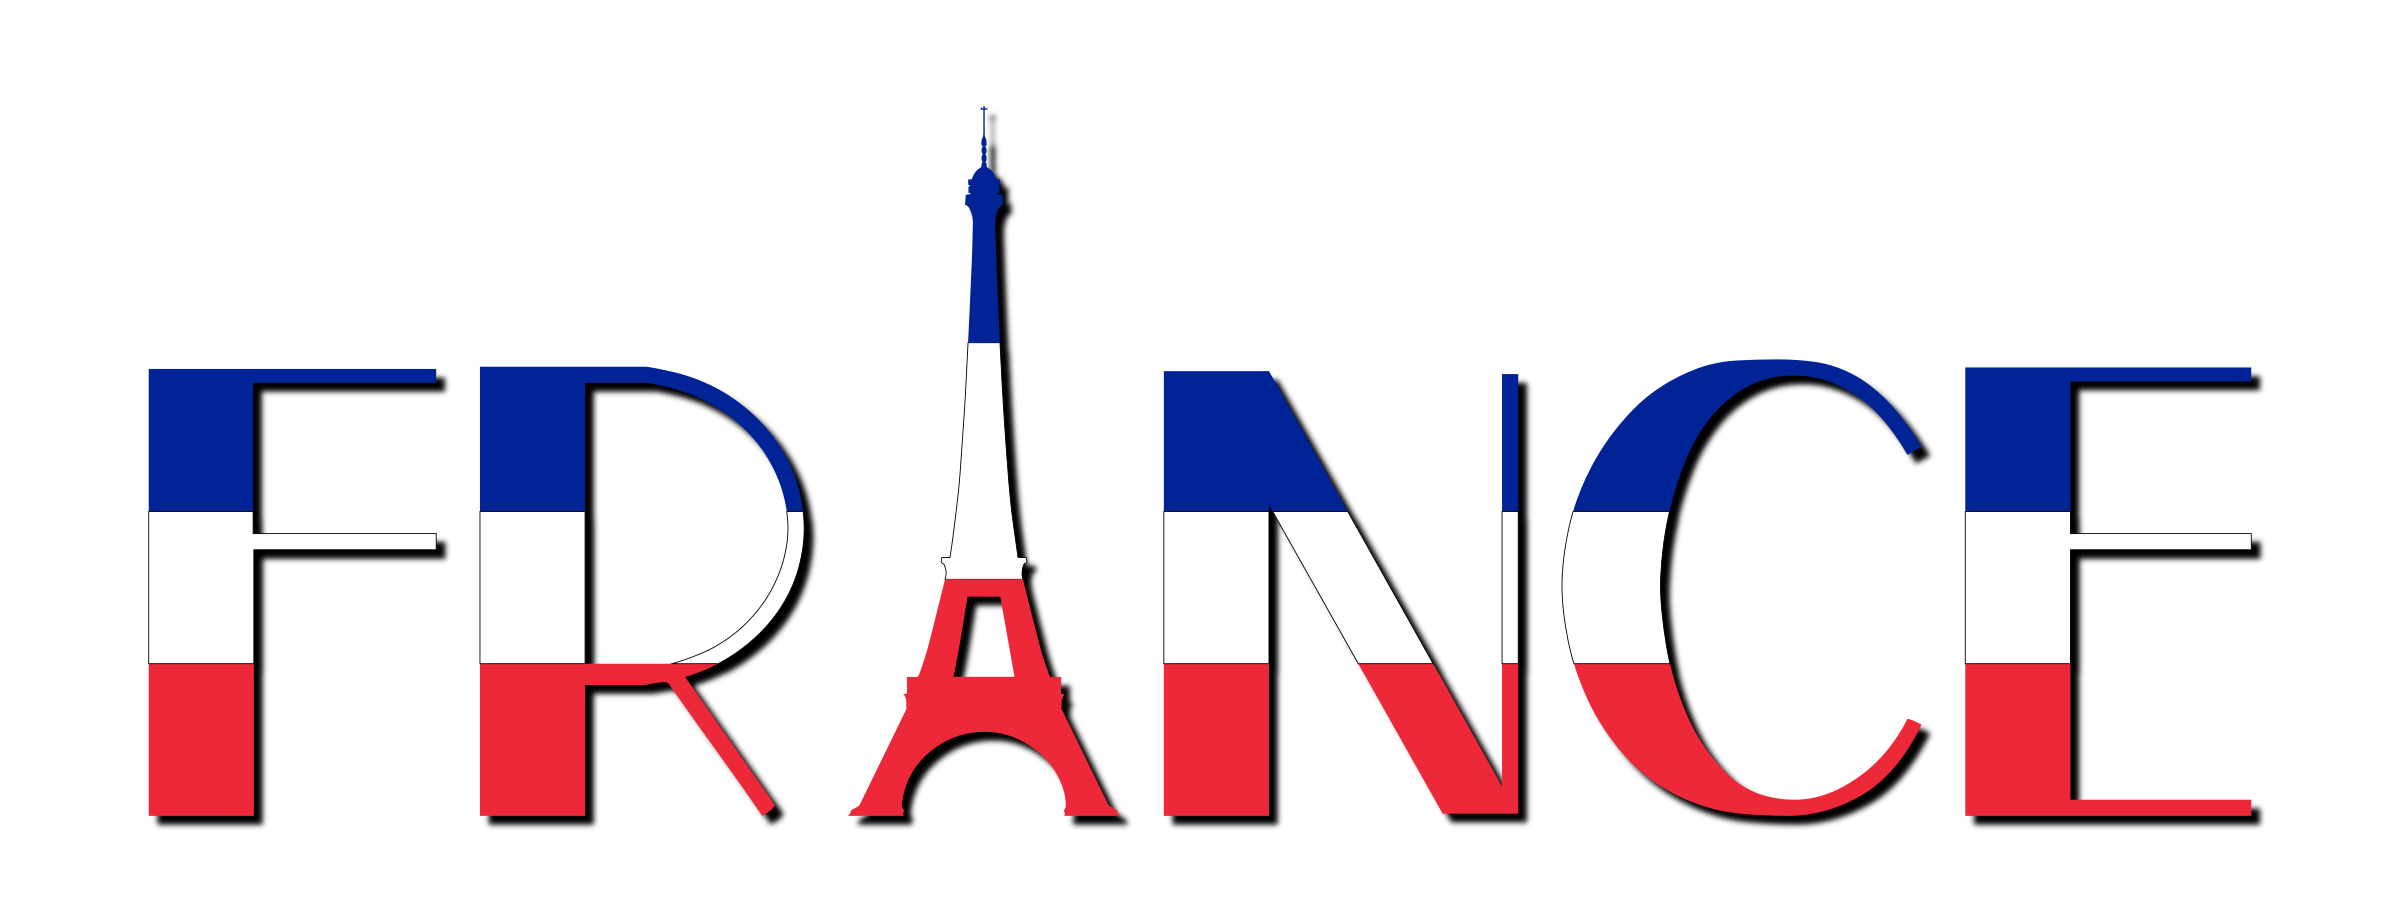 France Typography With Shadow by GDJ